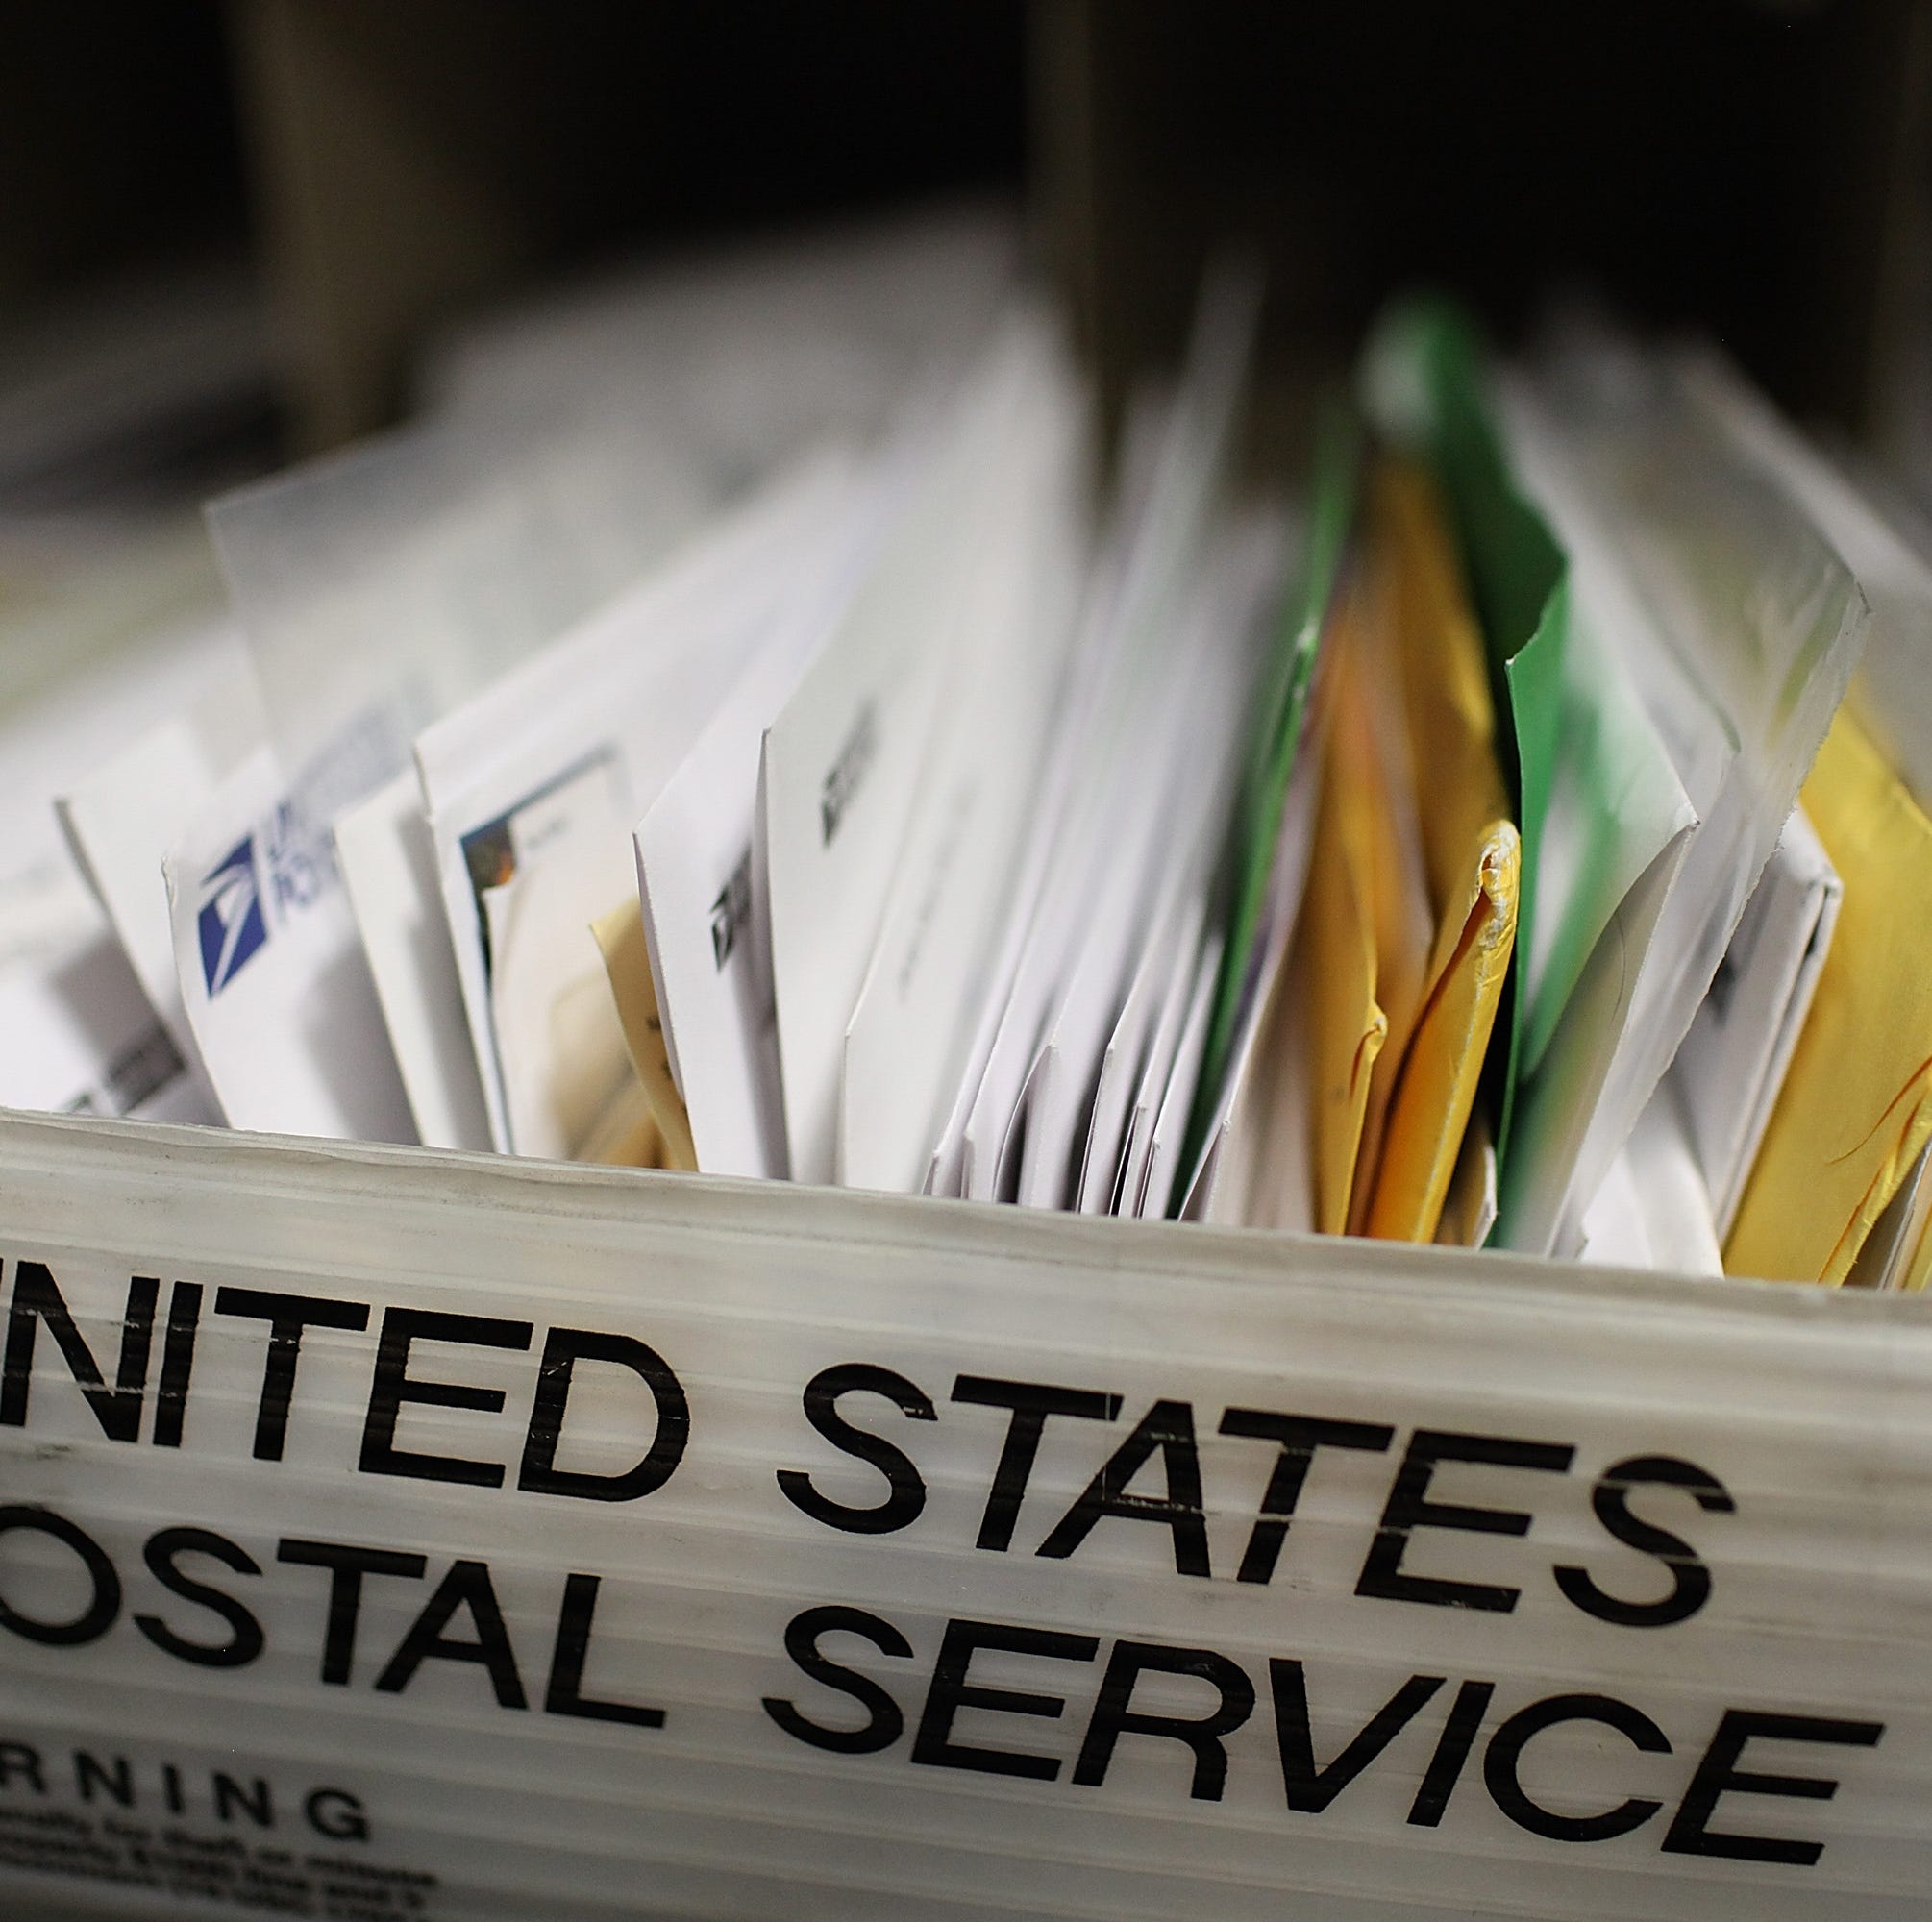 Macomb postal worker faces charges after feds find 15K pieces of mail